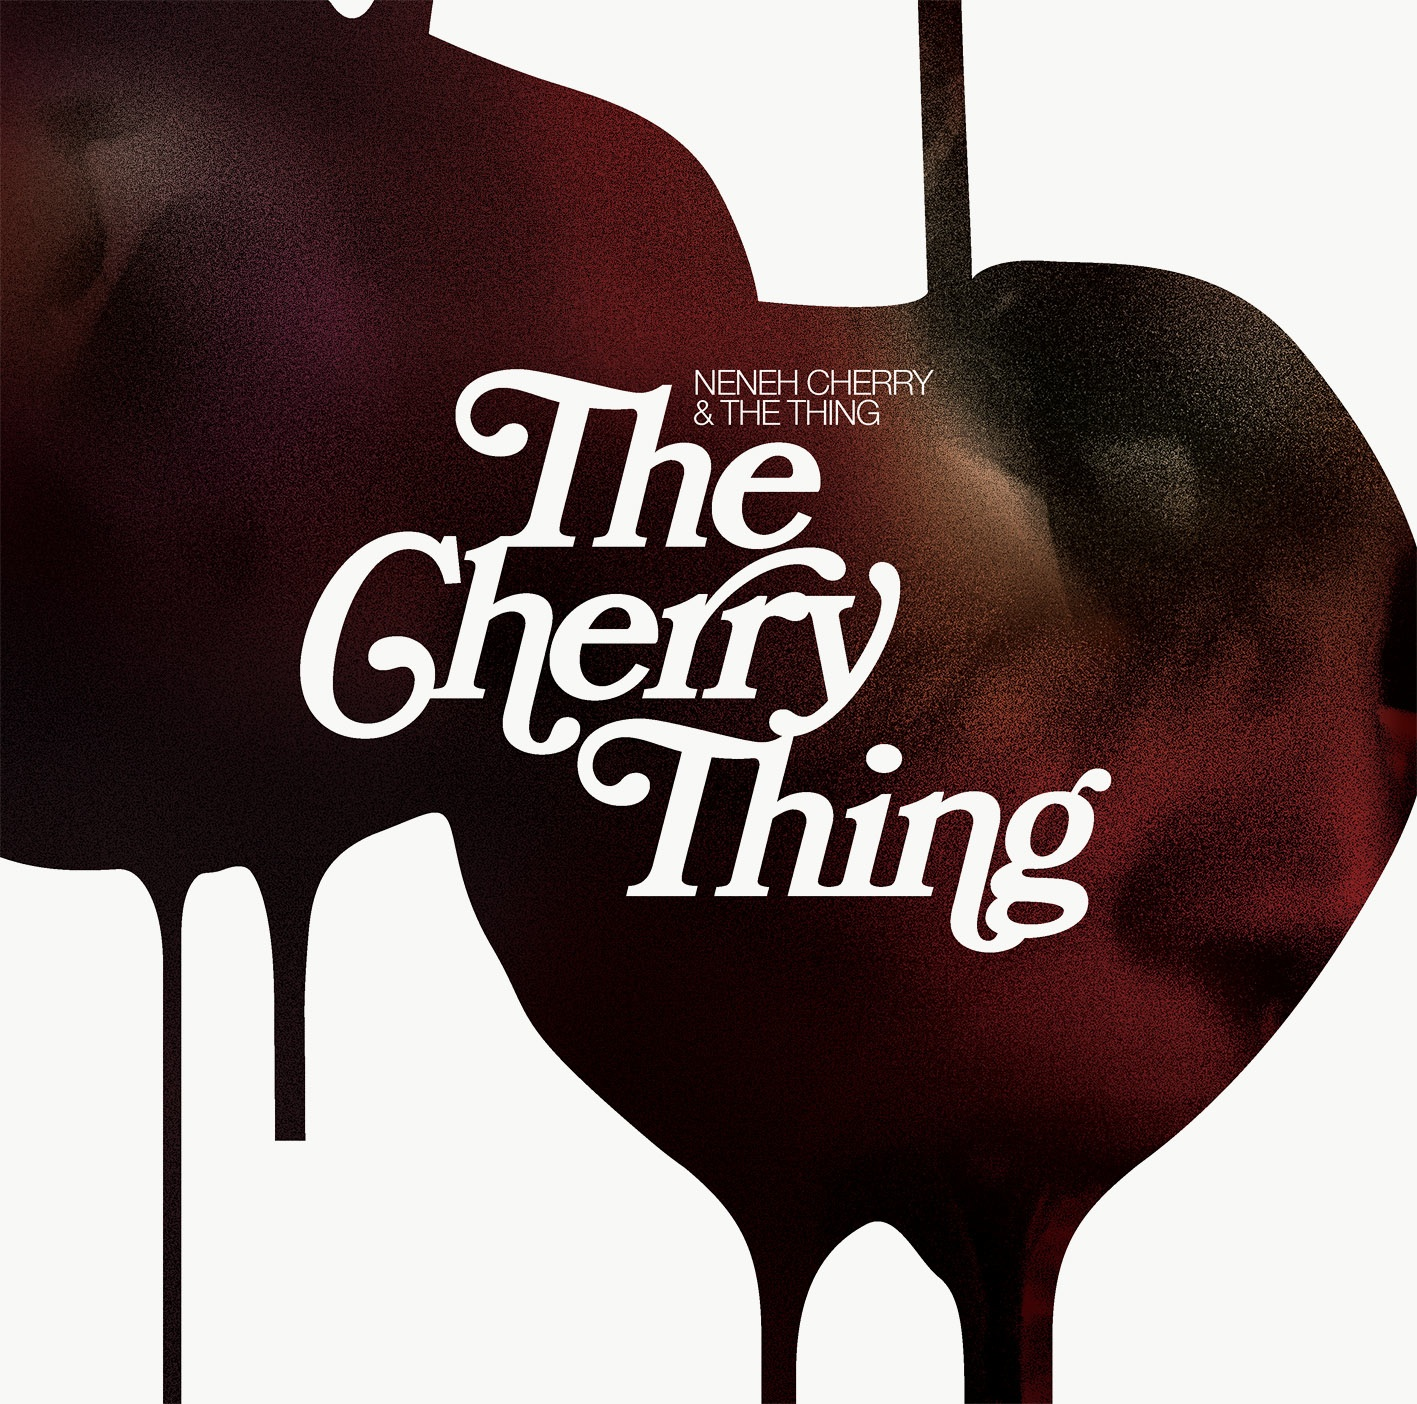 NenehCherryAndTheThing-The Cherry Thing